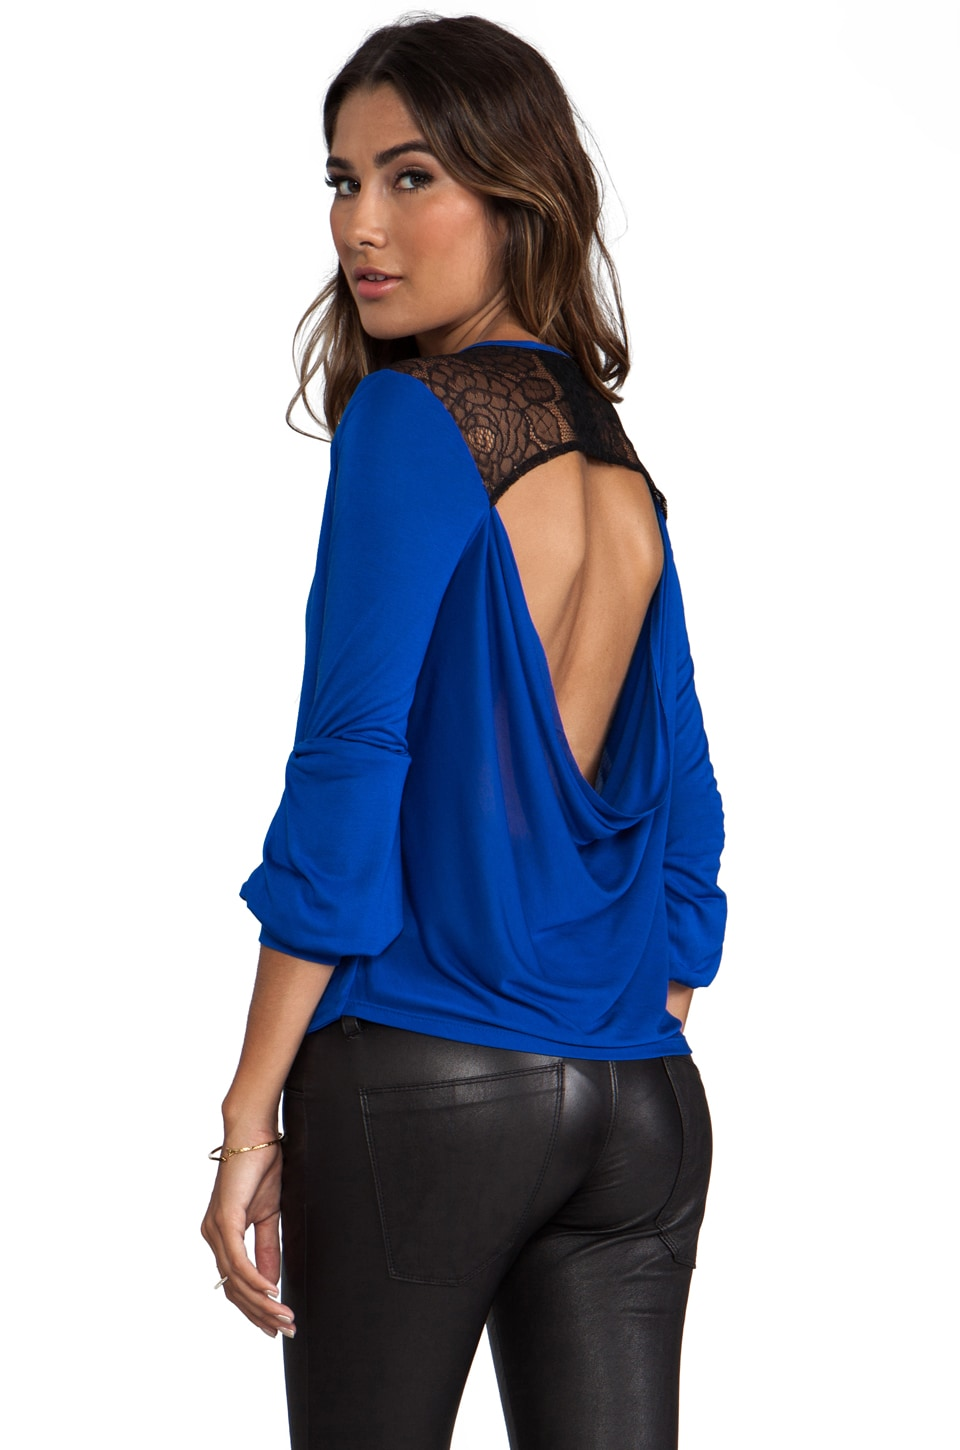 Blue Life Double Drape Top in Cobalt